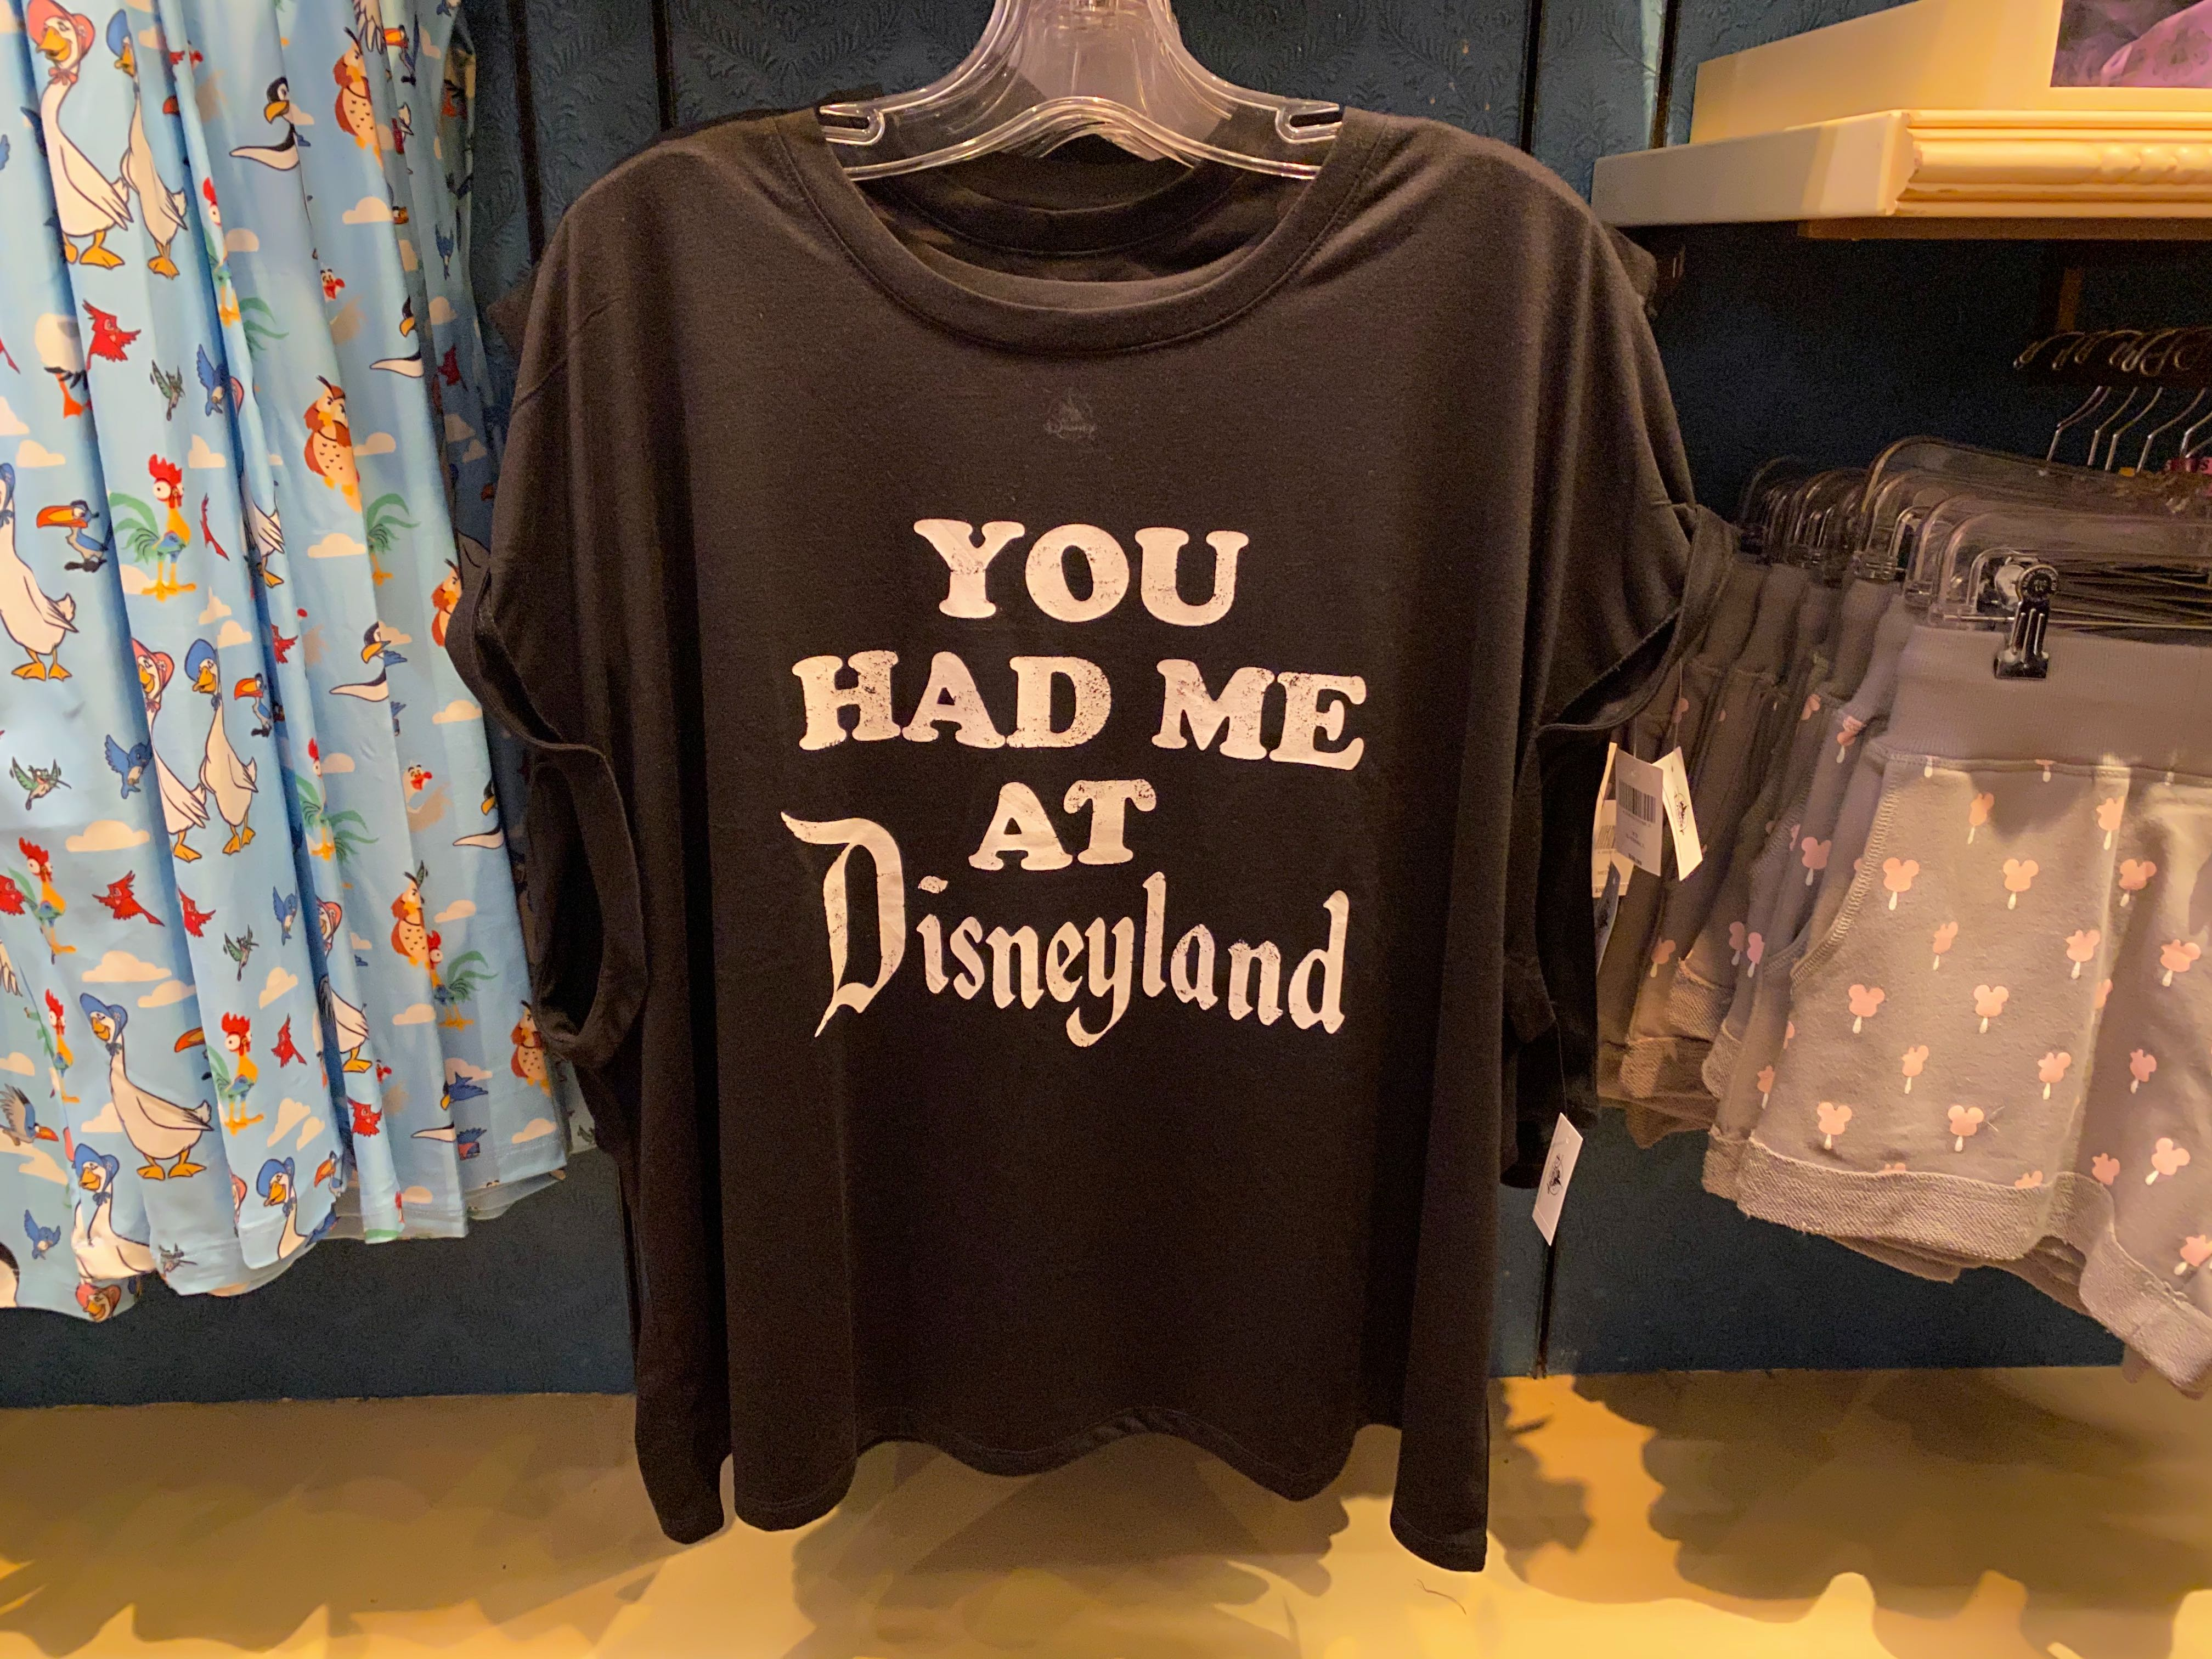 disneyland-icon-merch-02-23-2020-17.jpg